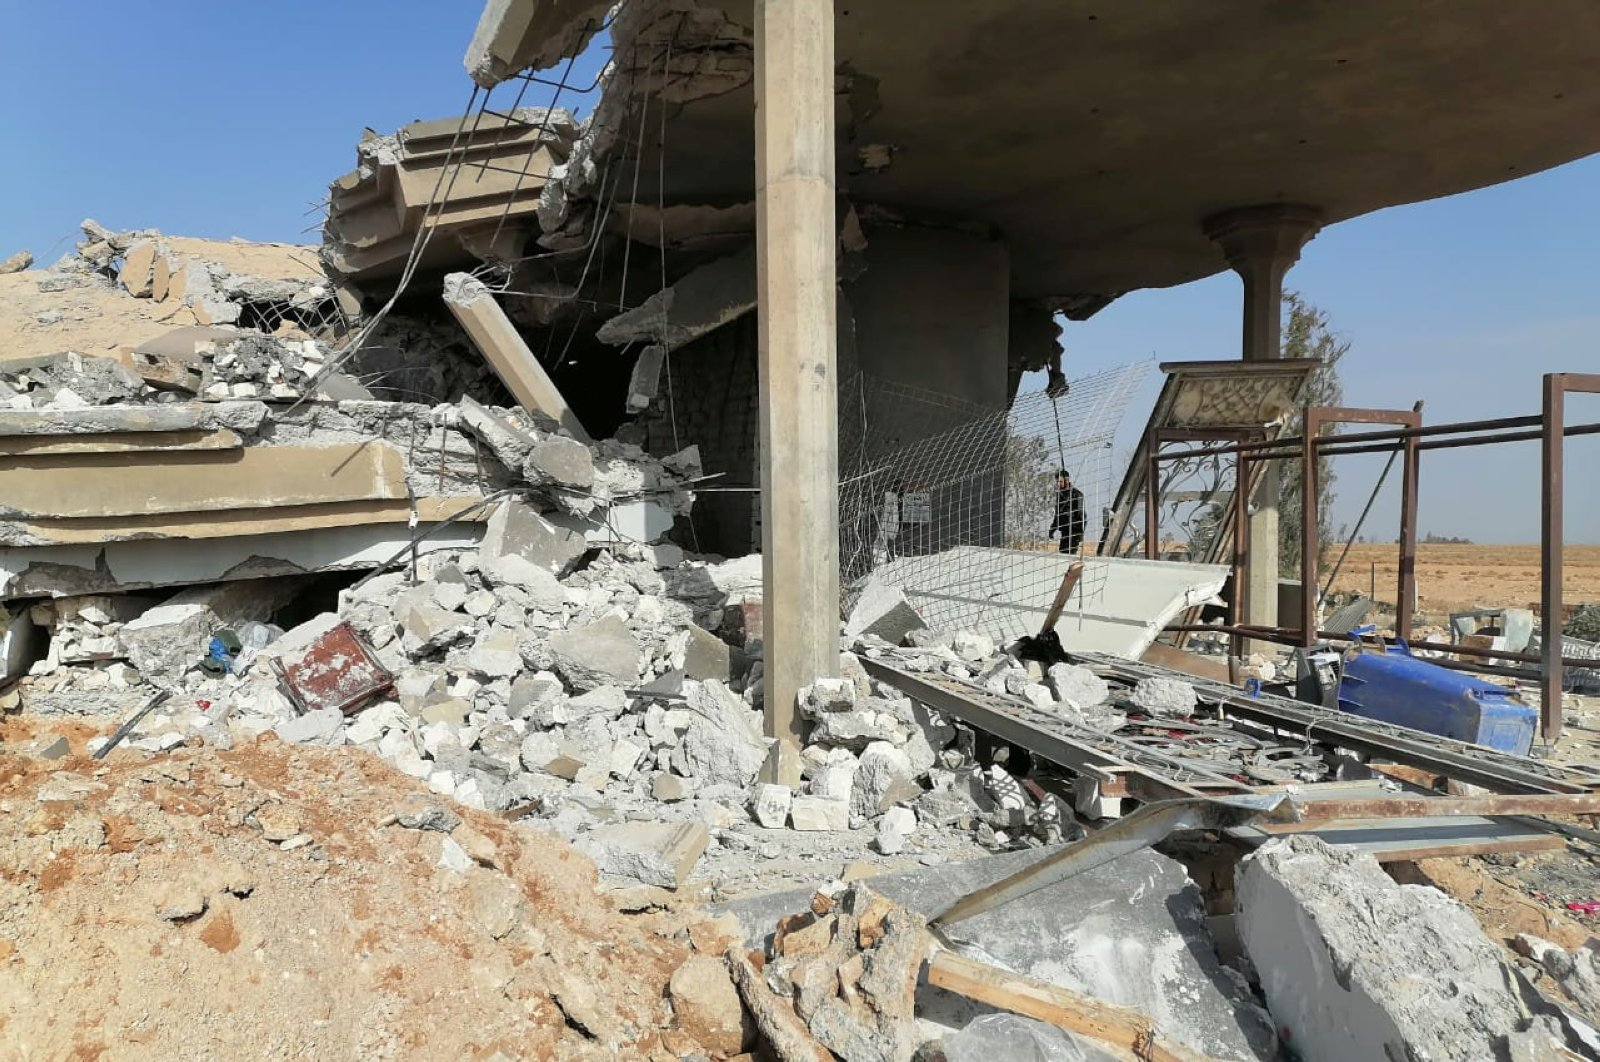 Destroyed headquarters of Kataib Hezbollah militia group are seen after in an air strike in Qaim, Iraq, December 30, 2019. (Reuters Photo)